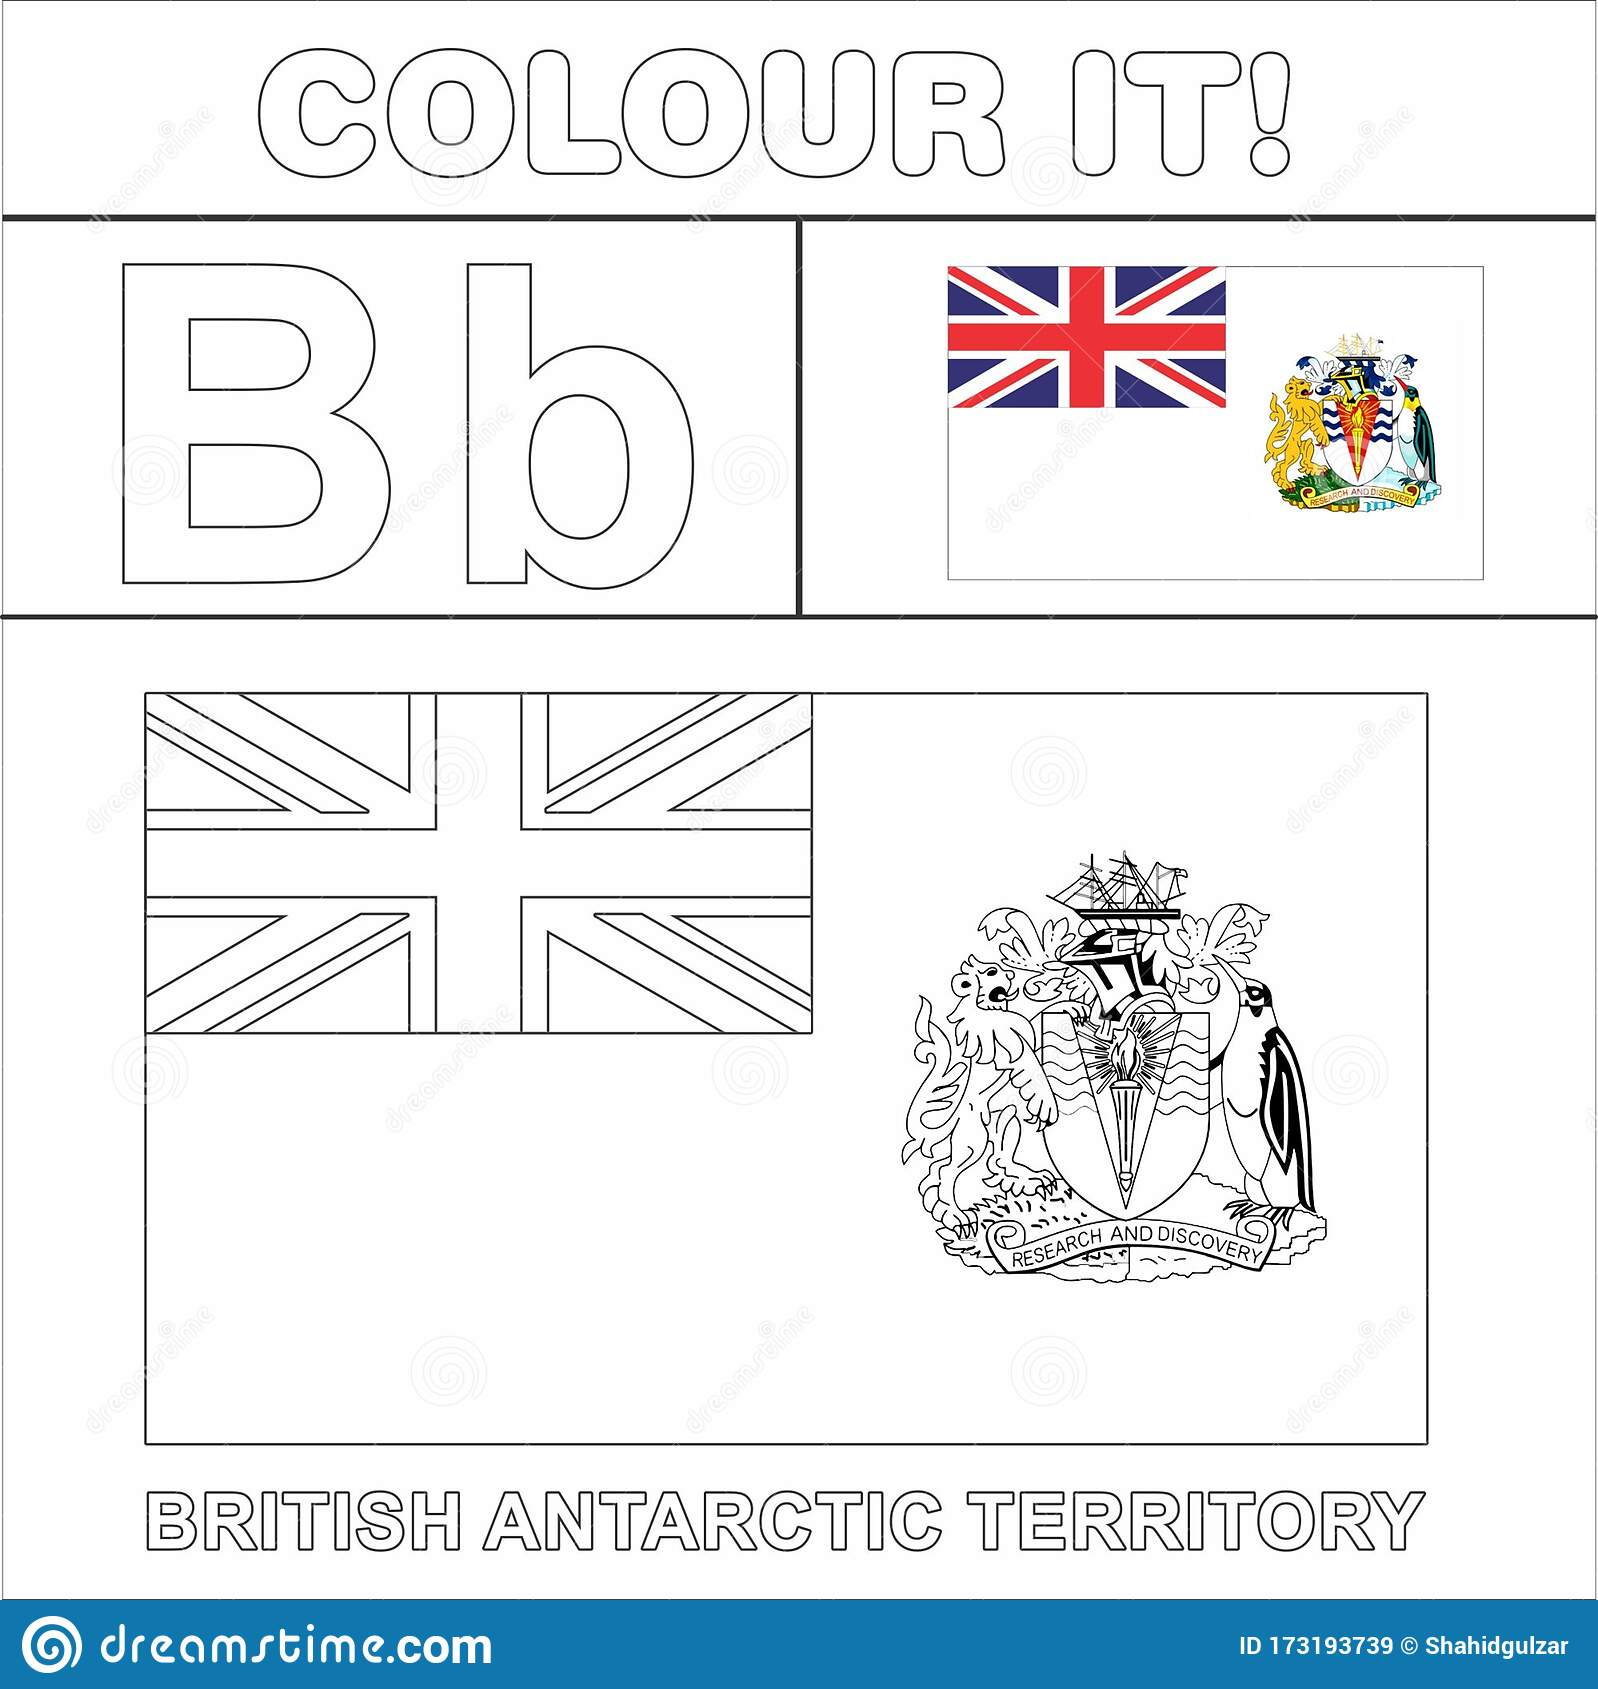 Colour It Kids Colouring Page Country Starting From English Letter B British Antarctic Territory How To Color Flag Stock Illustration Illustration Of Country Wallpaper 173193739